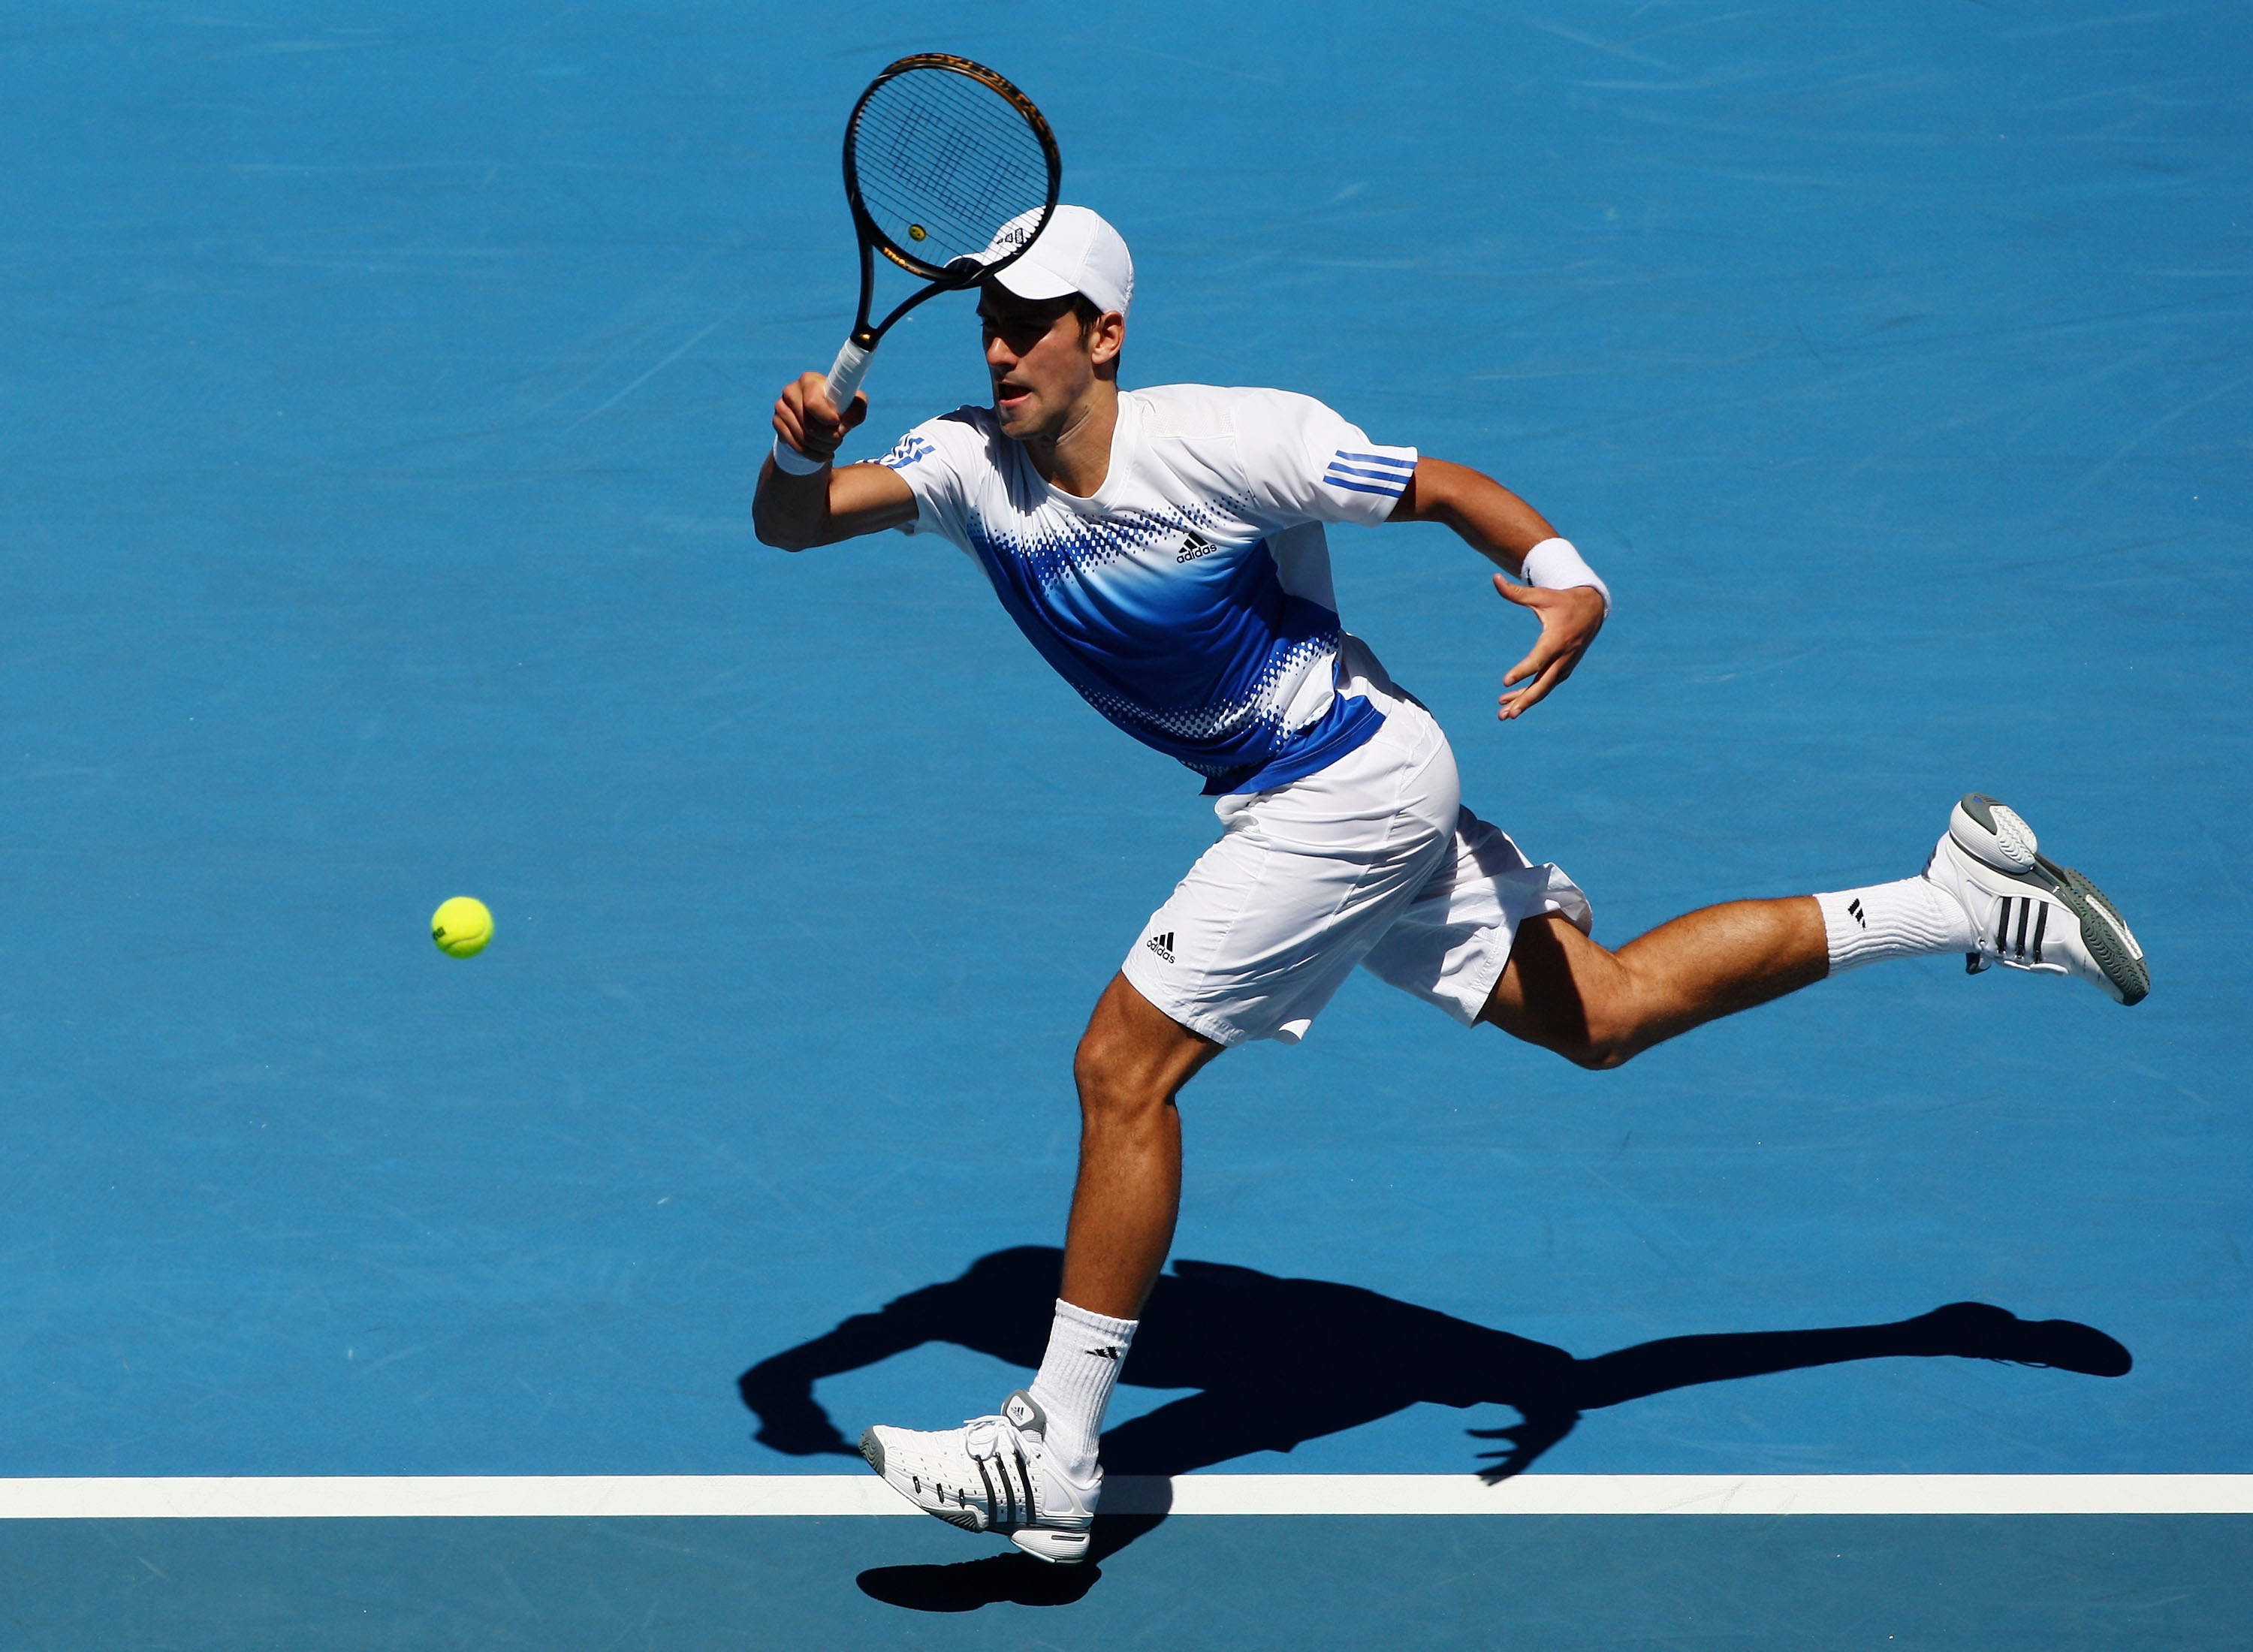 This is the season Djokovic's on-court fashion took flight, beginning in Melbourne at the Australian Open.